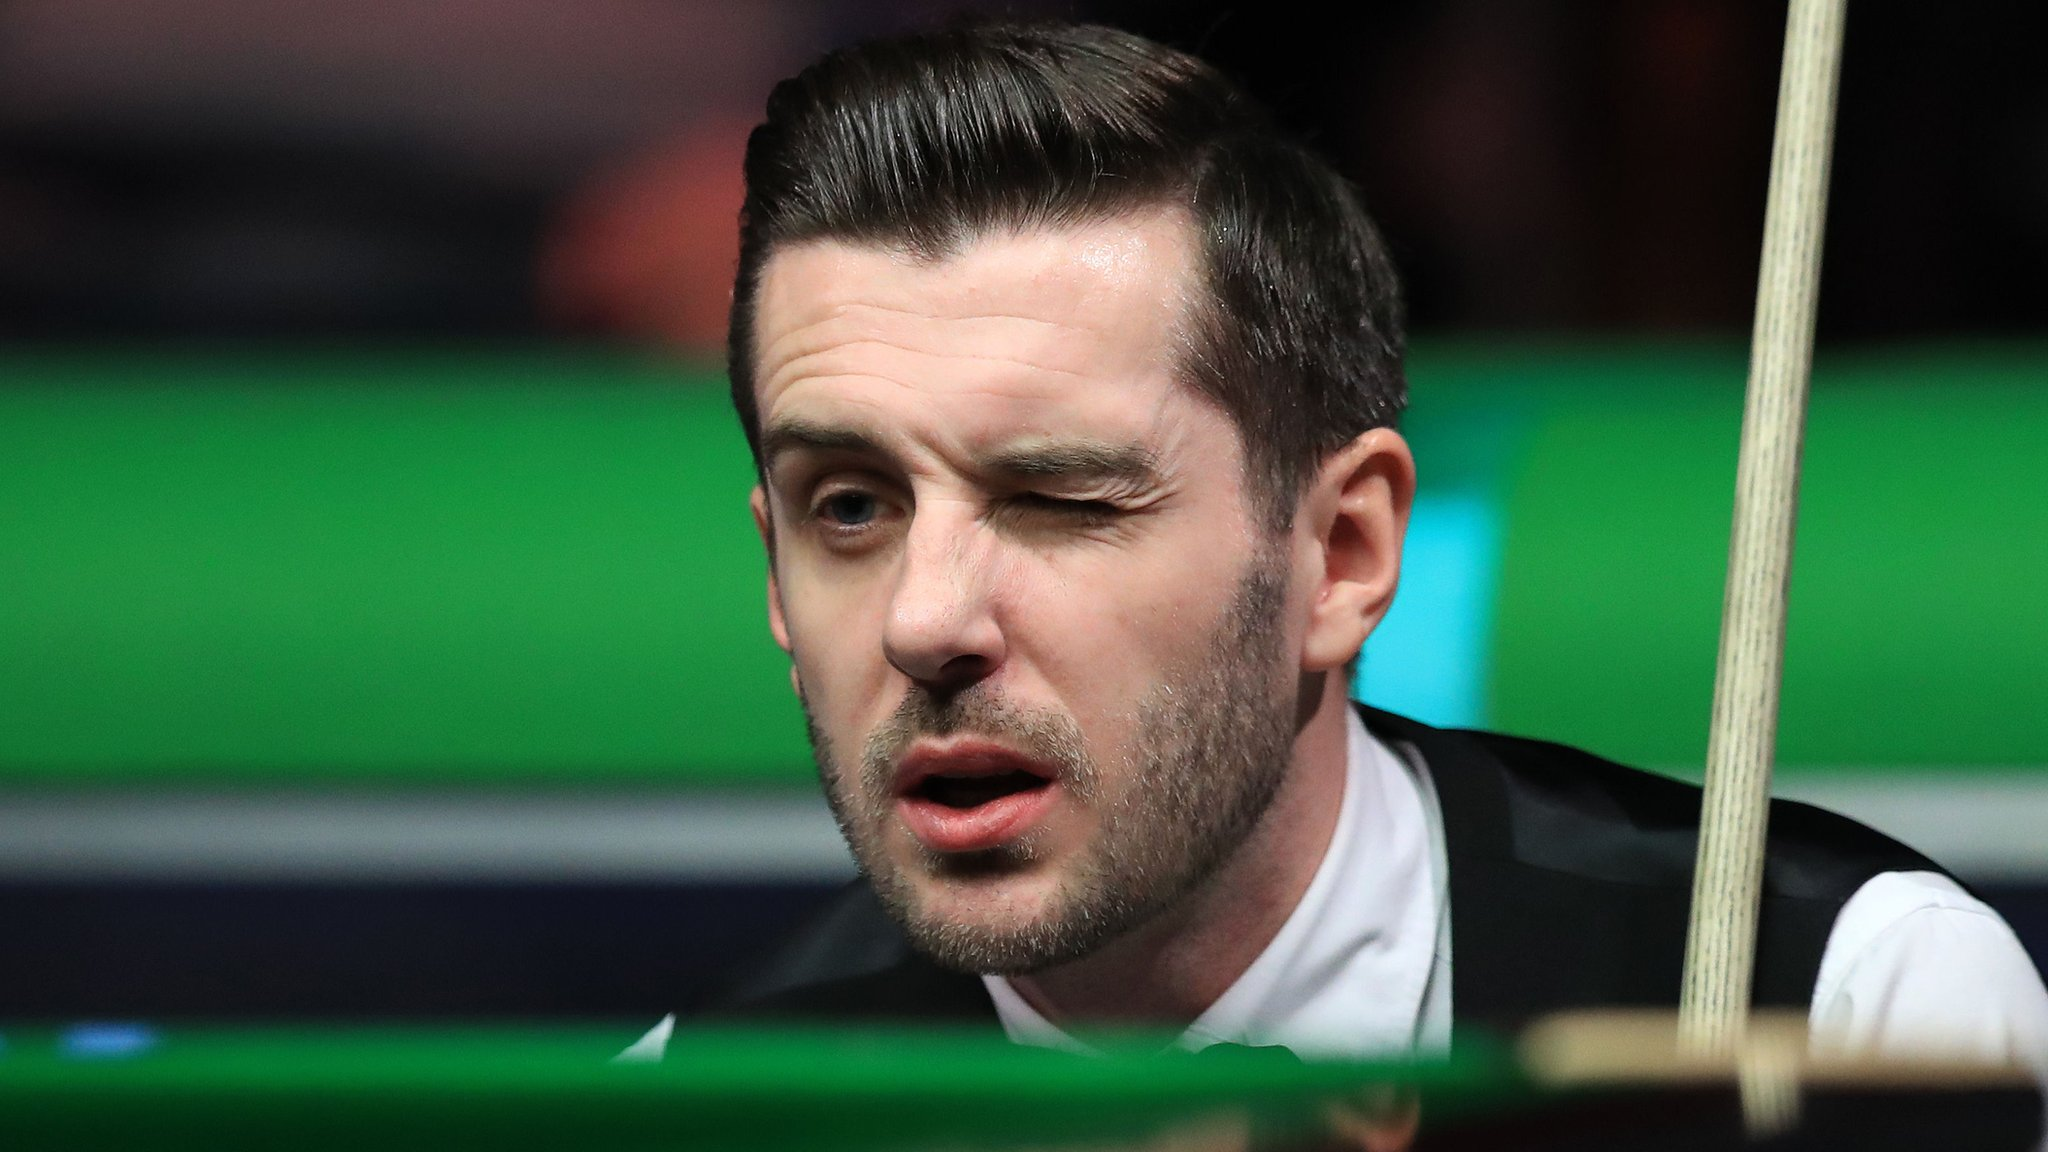 Mark Selby: Leicester man humbled by Hendry and Davis praise